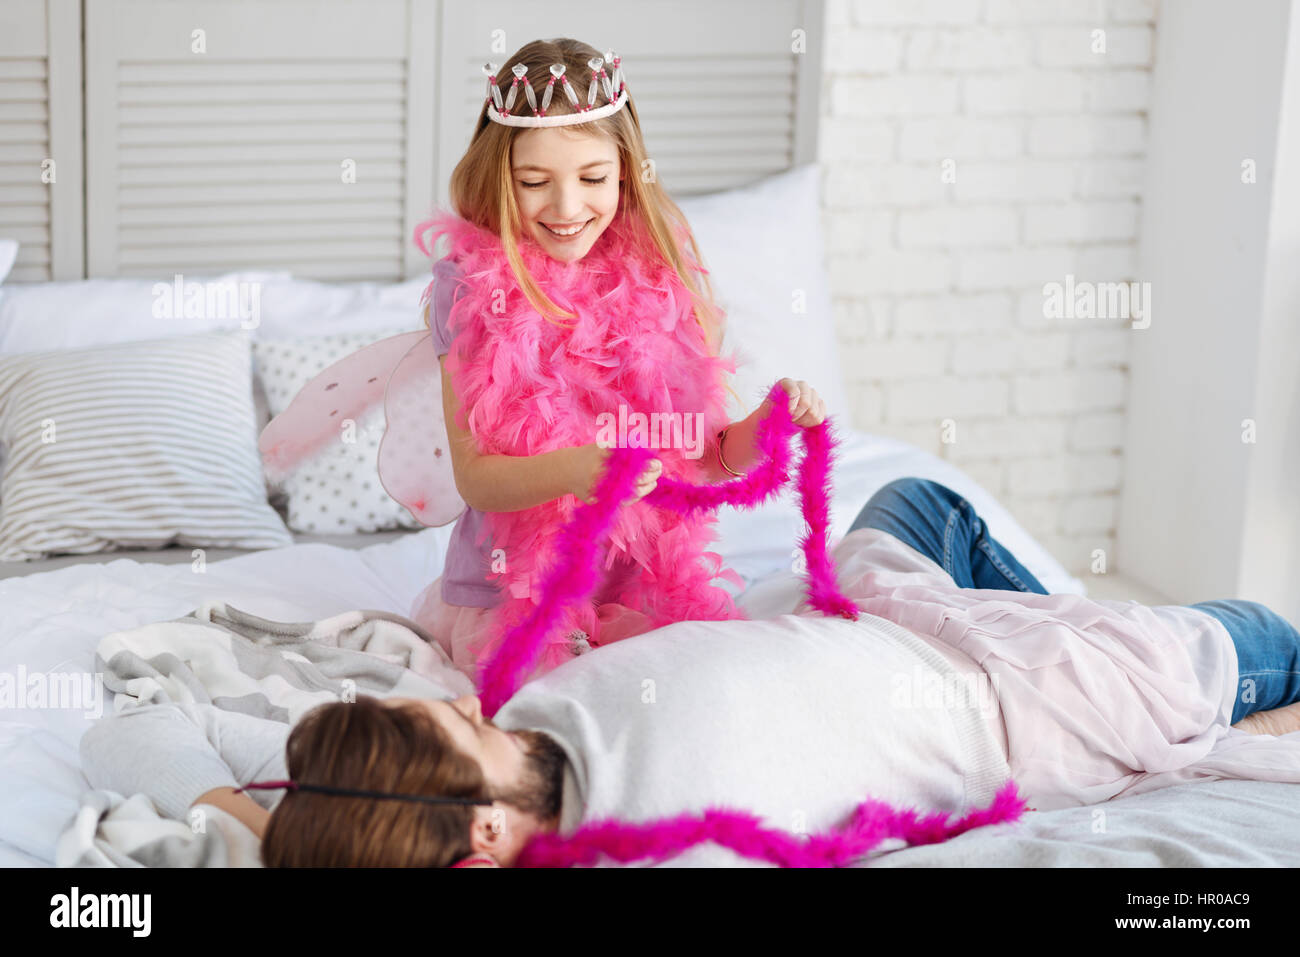 Play With Me Little Princess Wearing Crown And Pink Shawl Having